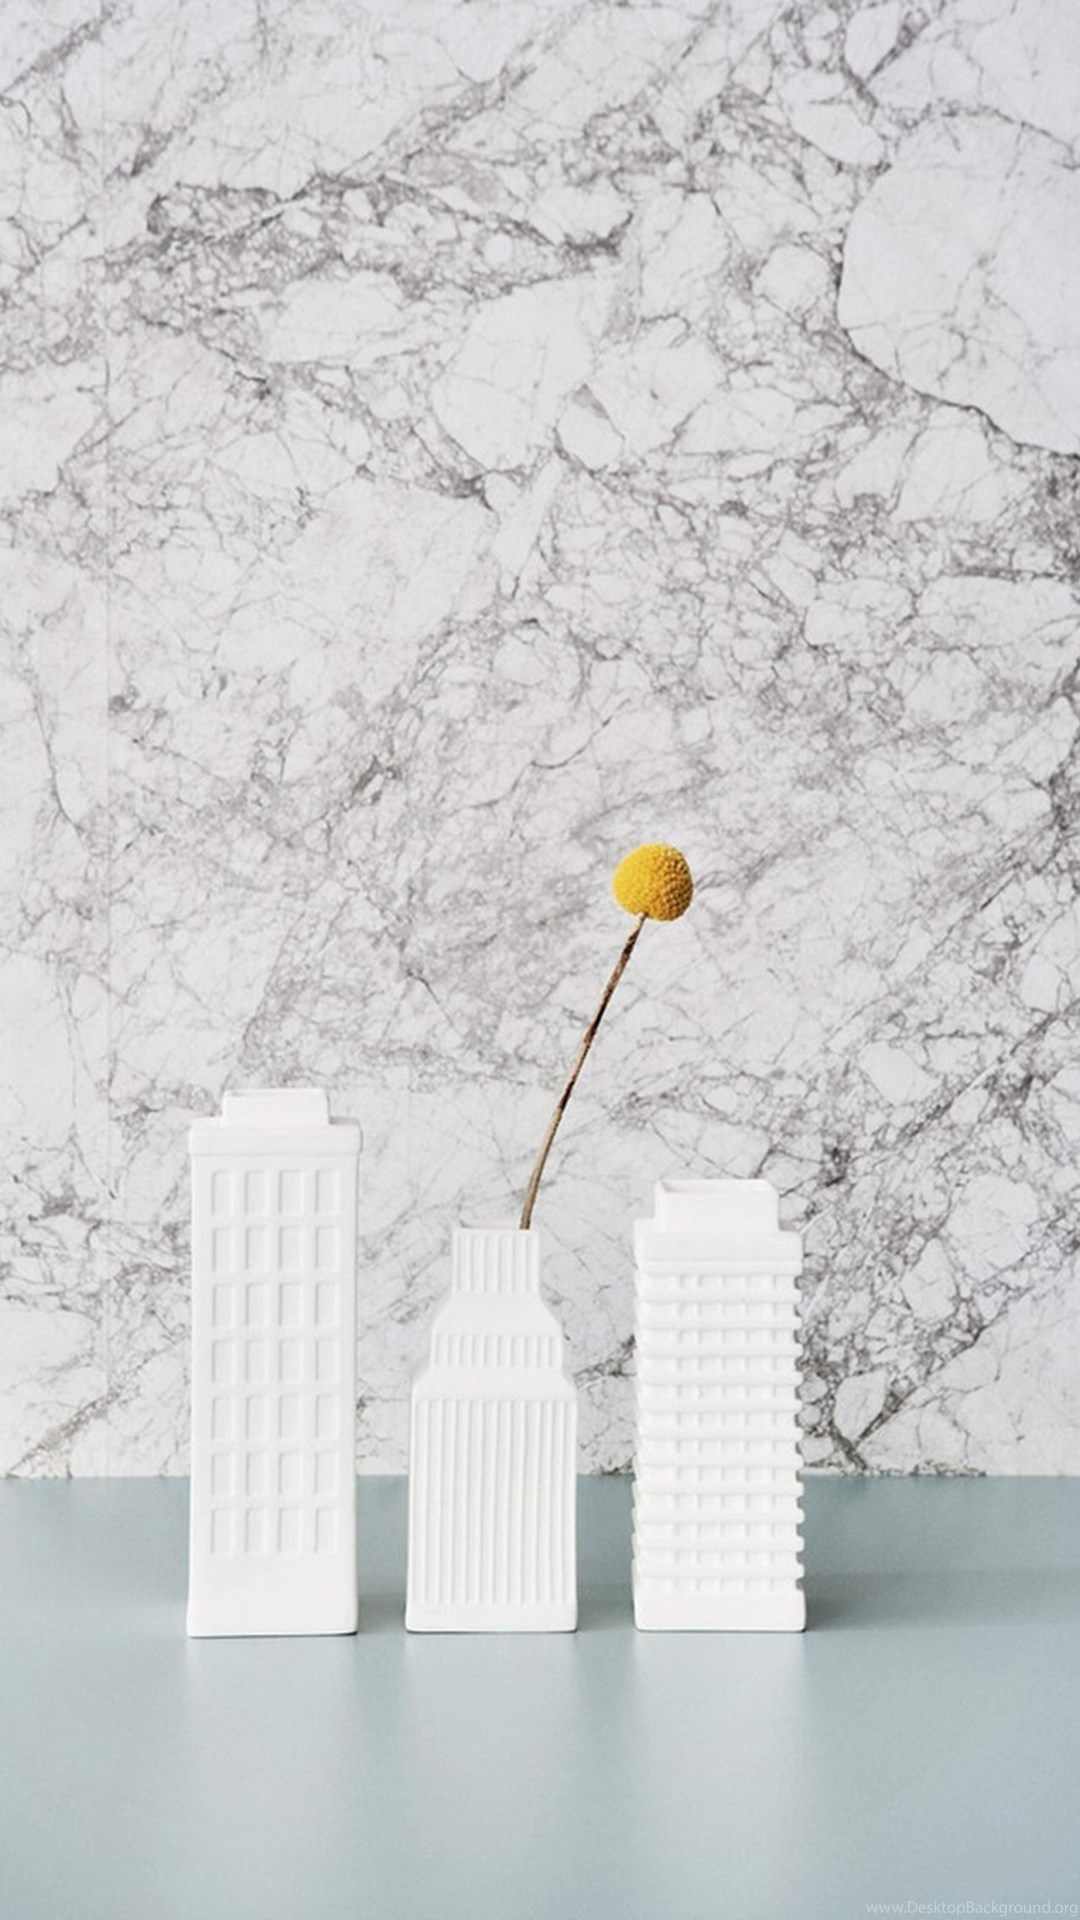 Cool Wallpaper Marble Tablet - 528657_add-marble-wallpapers-to-walls-goerie-com-erie-pa_3000x4498_h  Trends_374848.jpg